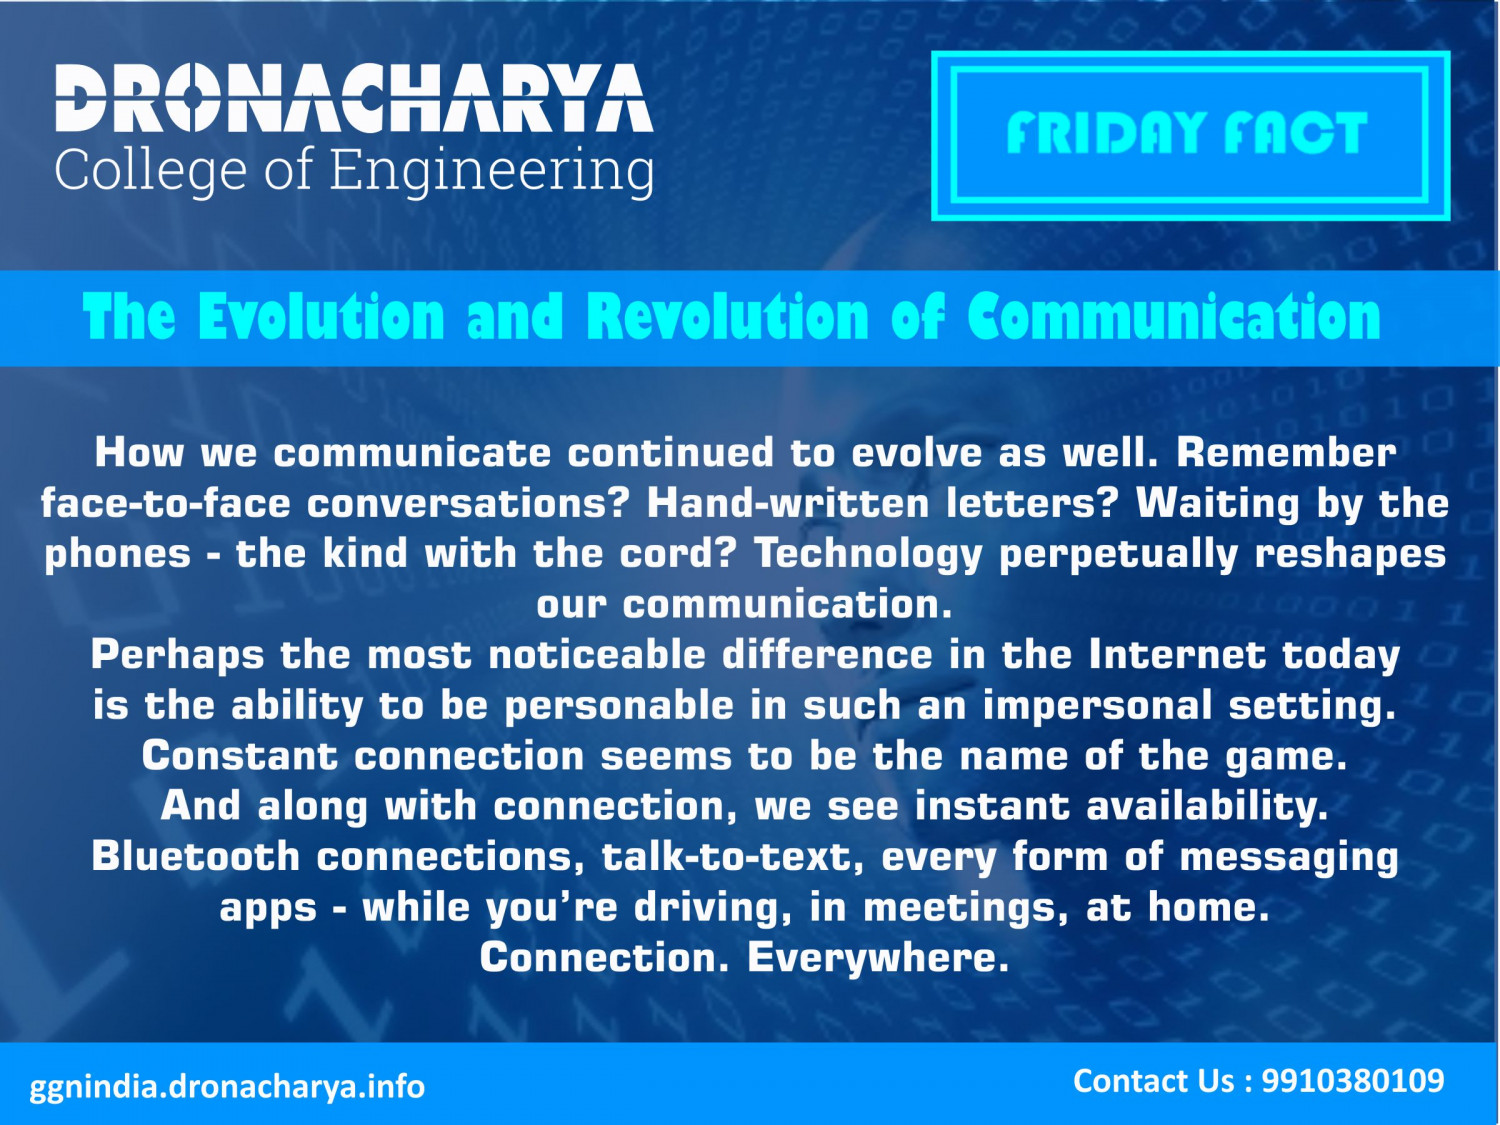 Friday fact_Dronacharya College of Engineering Infographic